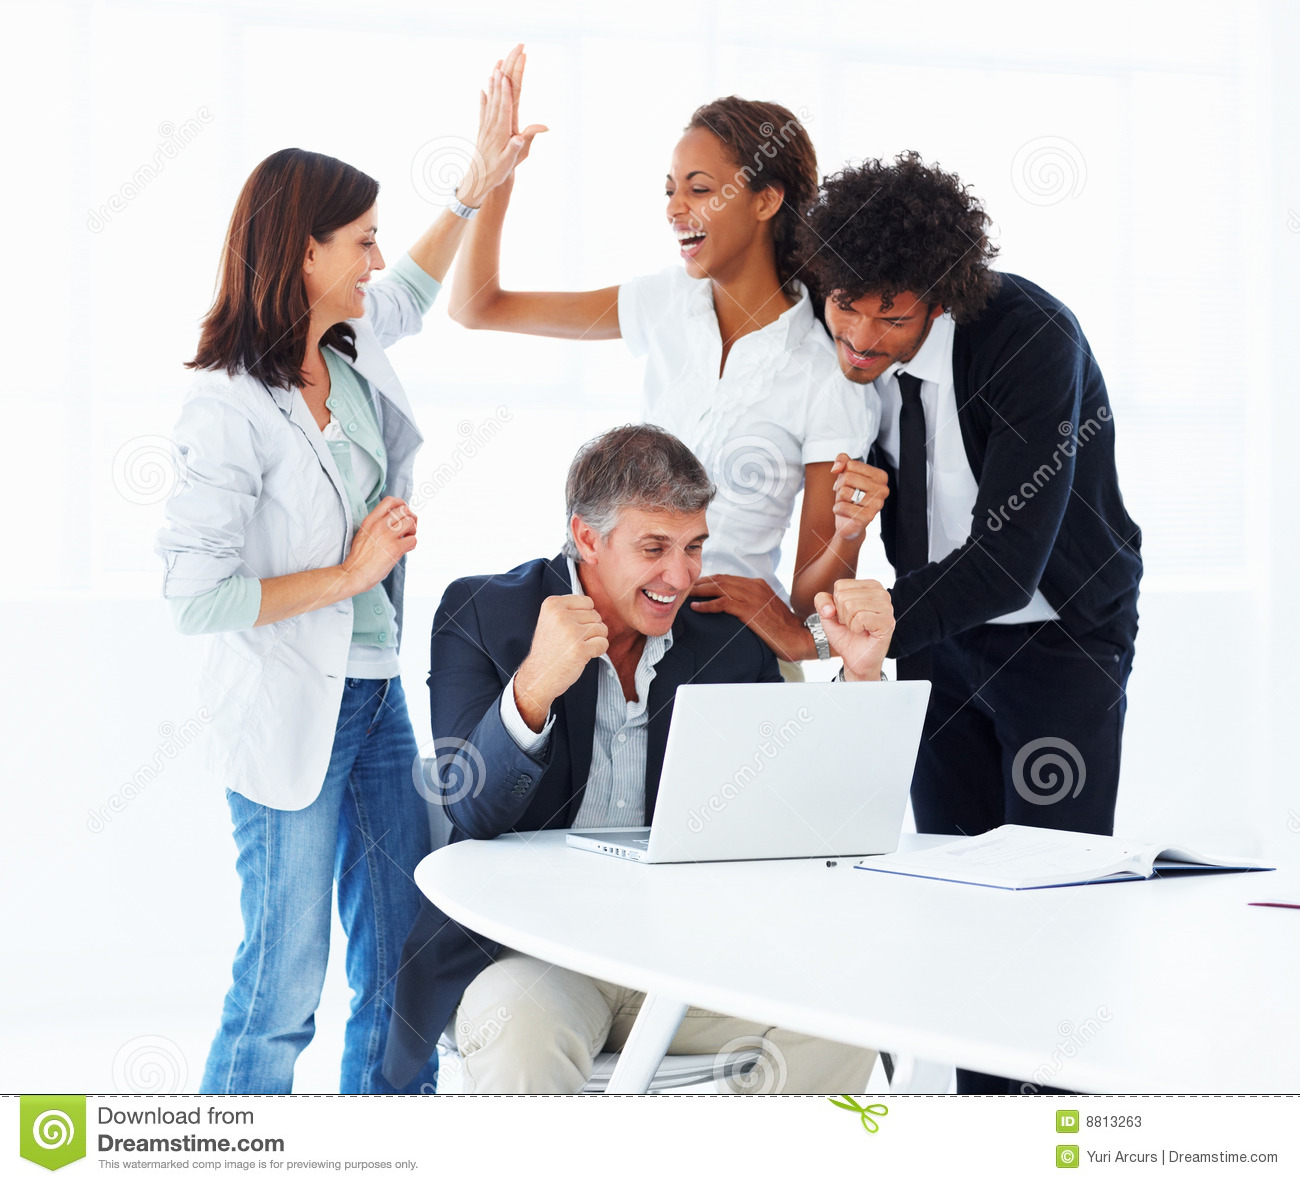 Stock Photos: Business people working together on a laptop. Image